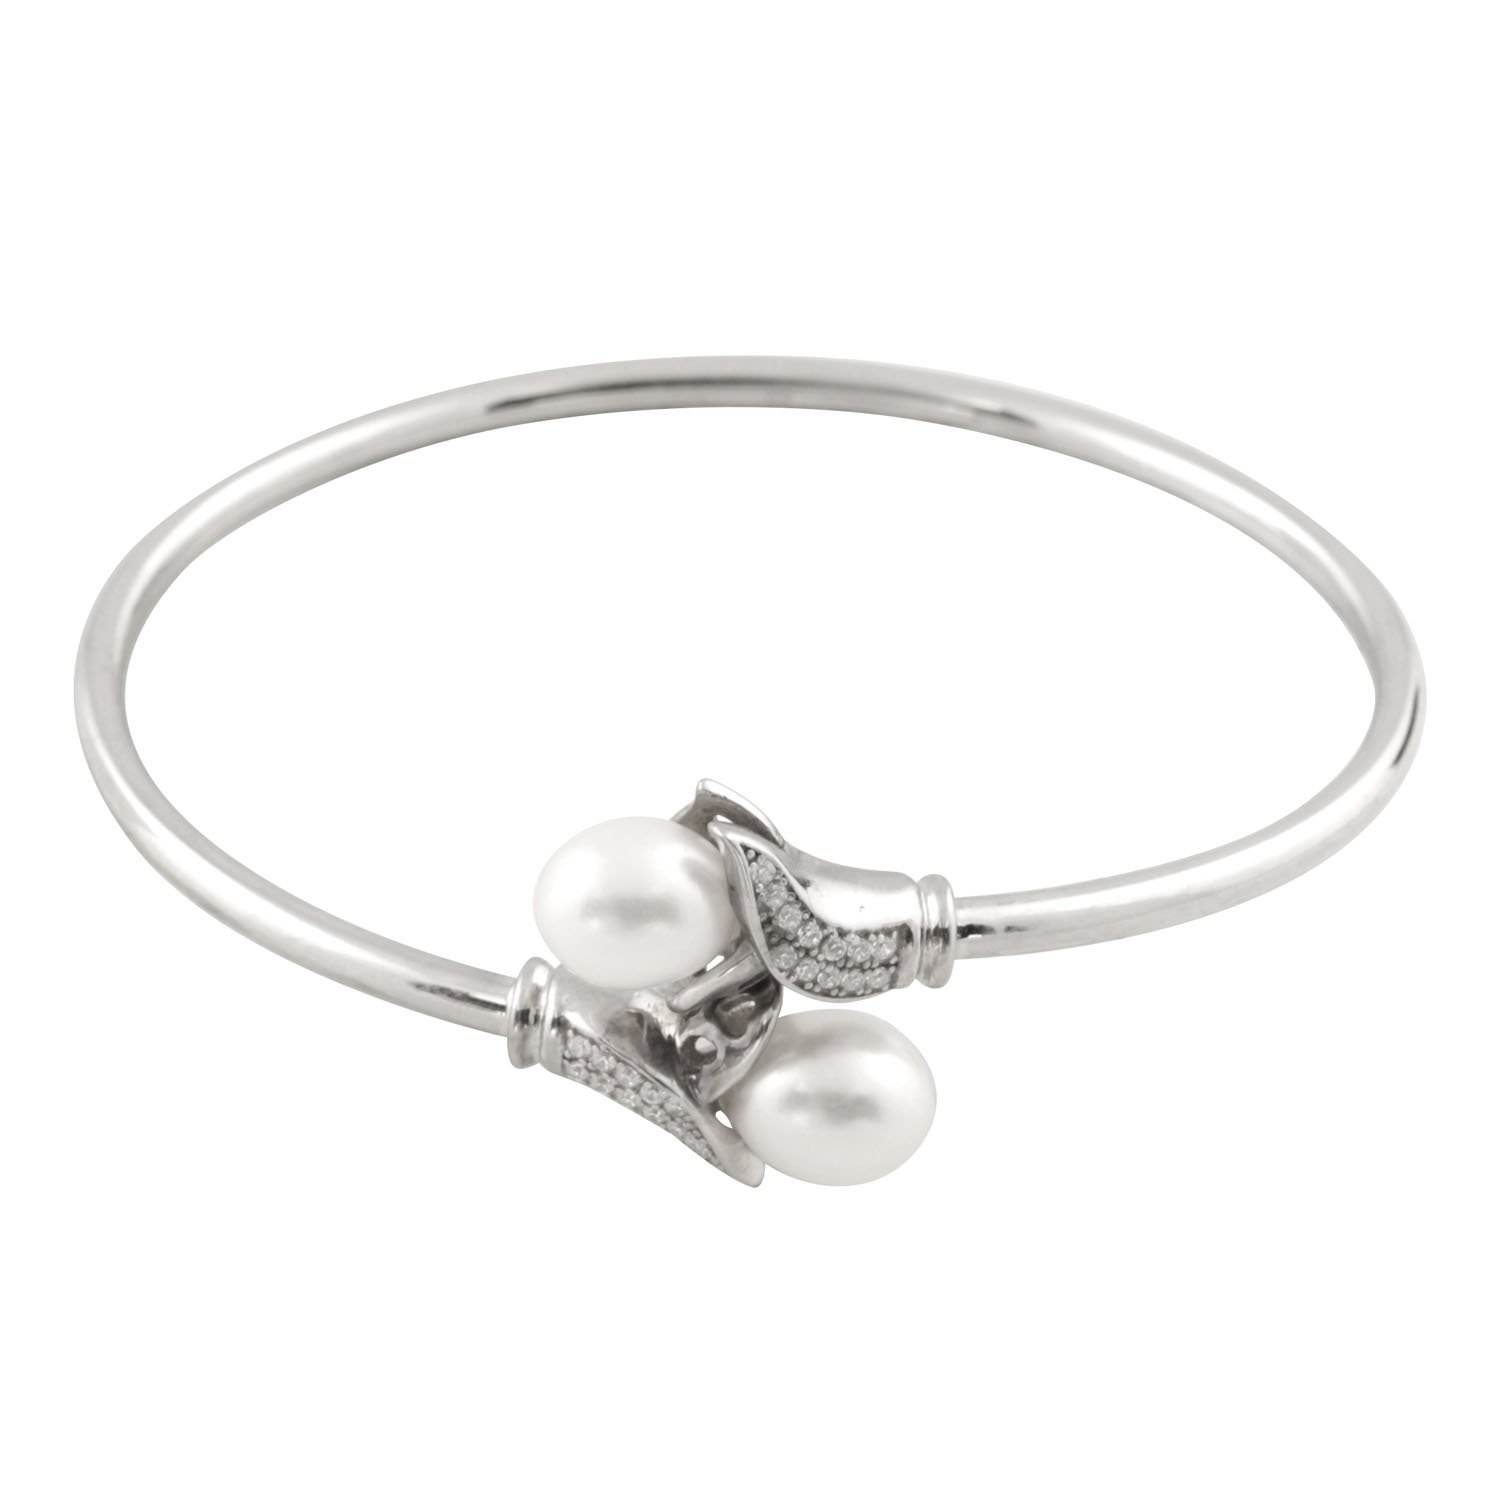 Handpicked AAA 13-15 Half-Drilled Keshi Cultured Pearls Rhodium-plated 925 Sterling Silver Flex Bangle 7